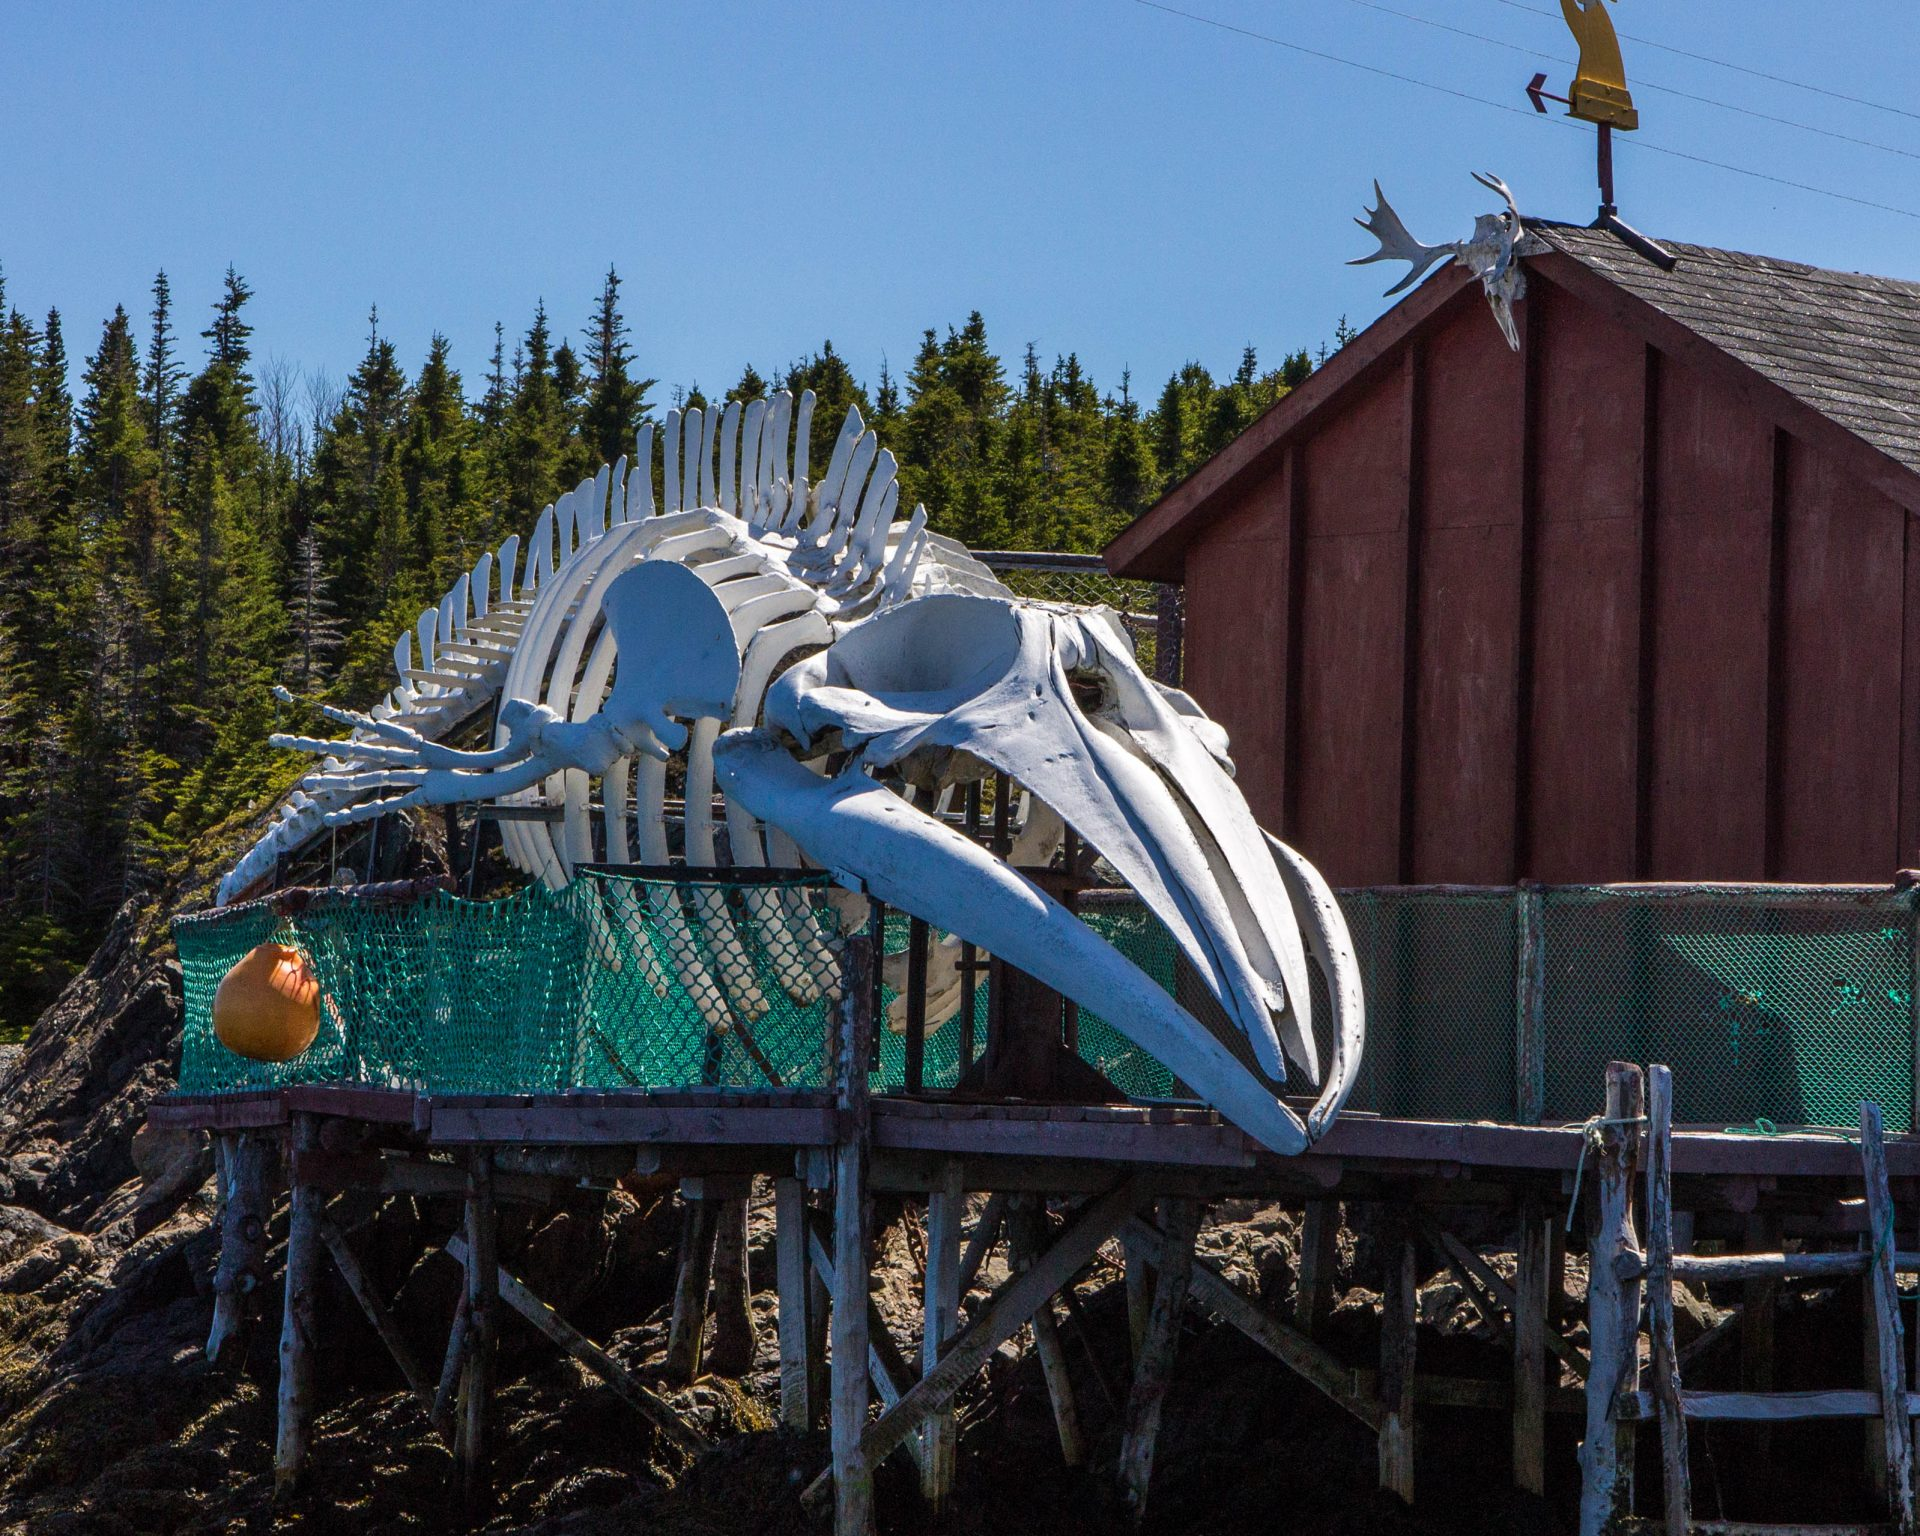 The skeleton of a Sei whale is on display outside a fishing shed - Icebergs in Twillingate